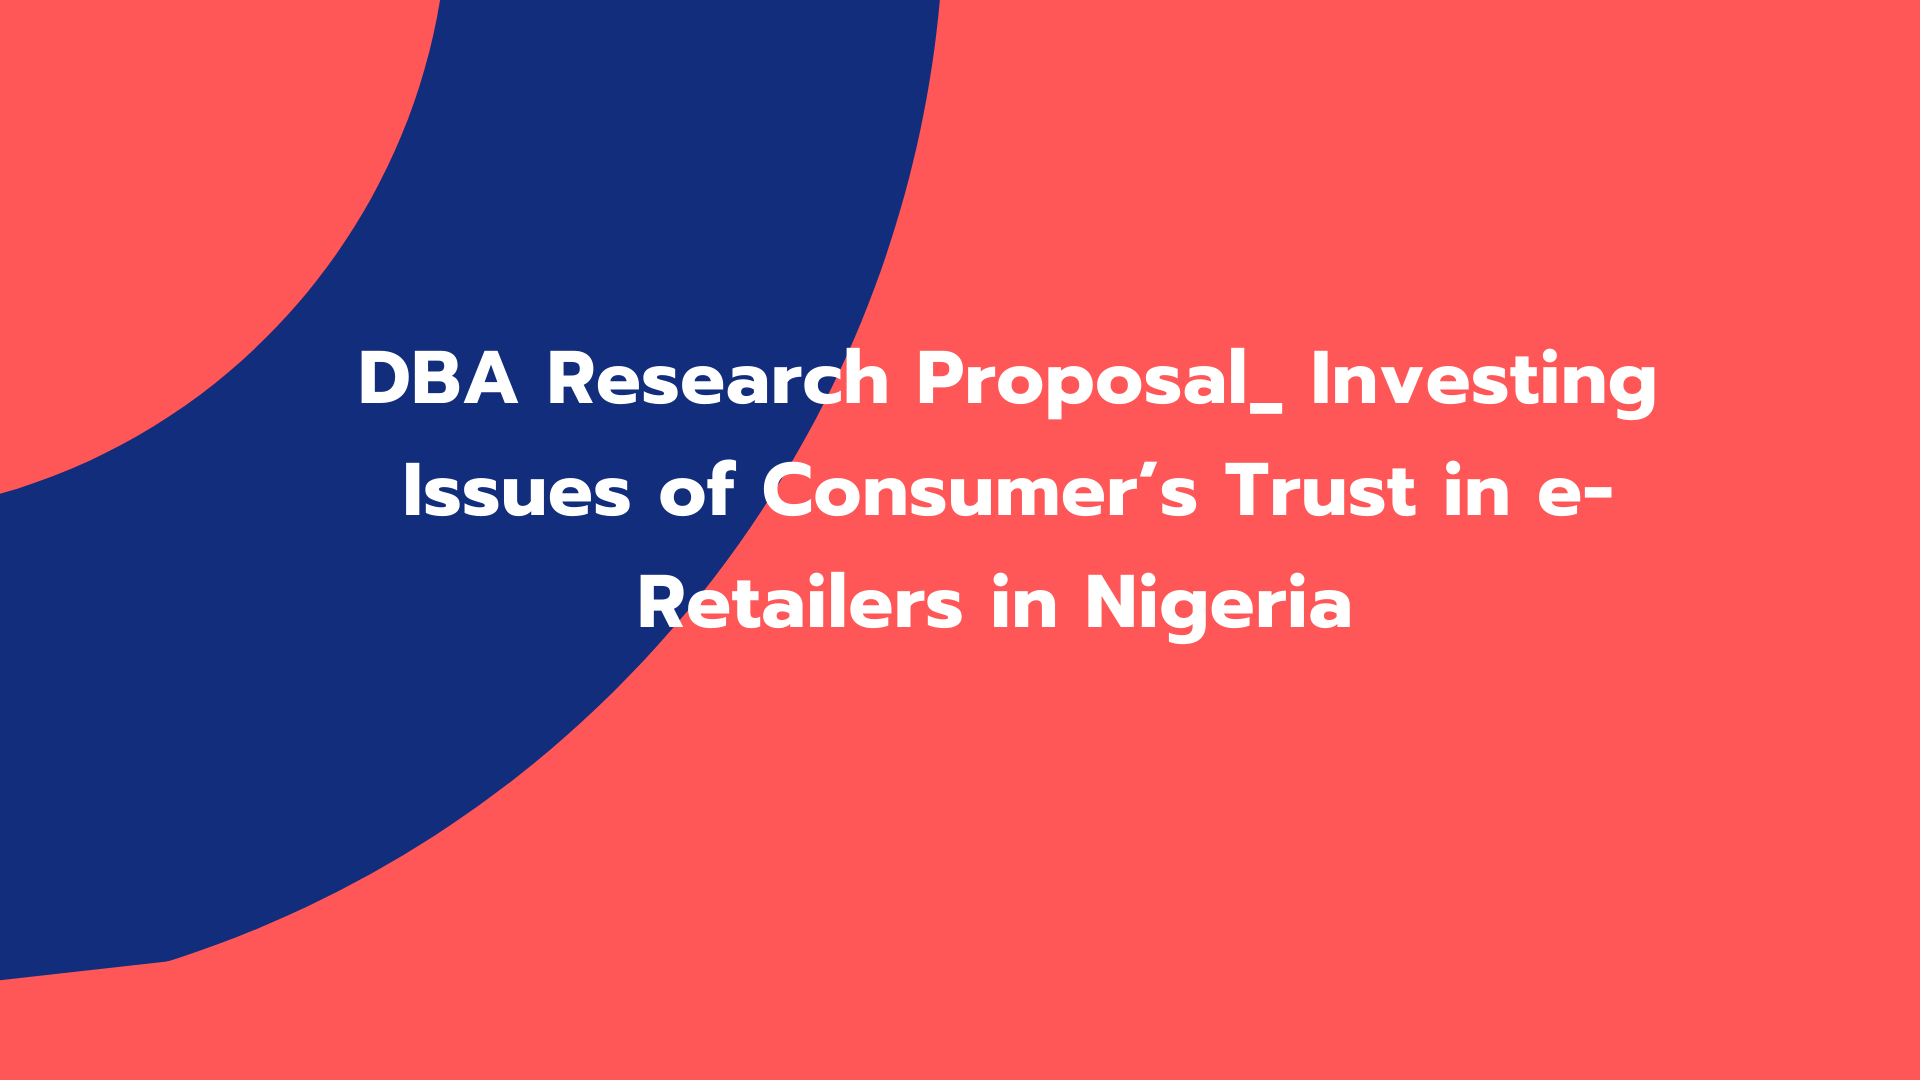 DBA Research Proposal_ Investing Issues of Consumer's Trust in e-Retailers in Nigeria